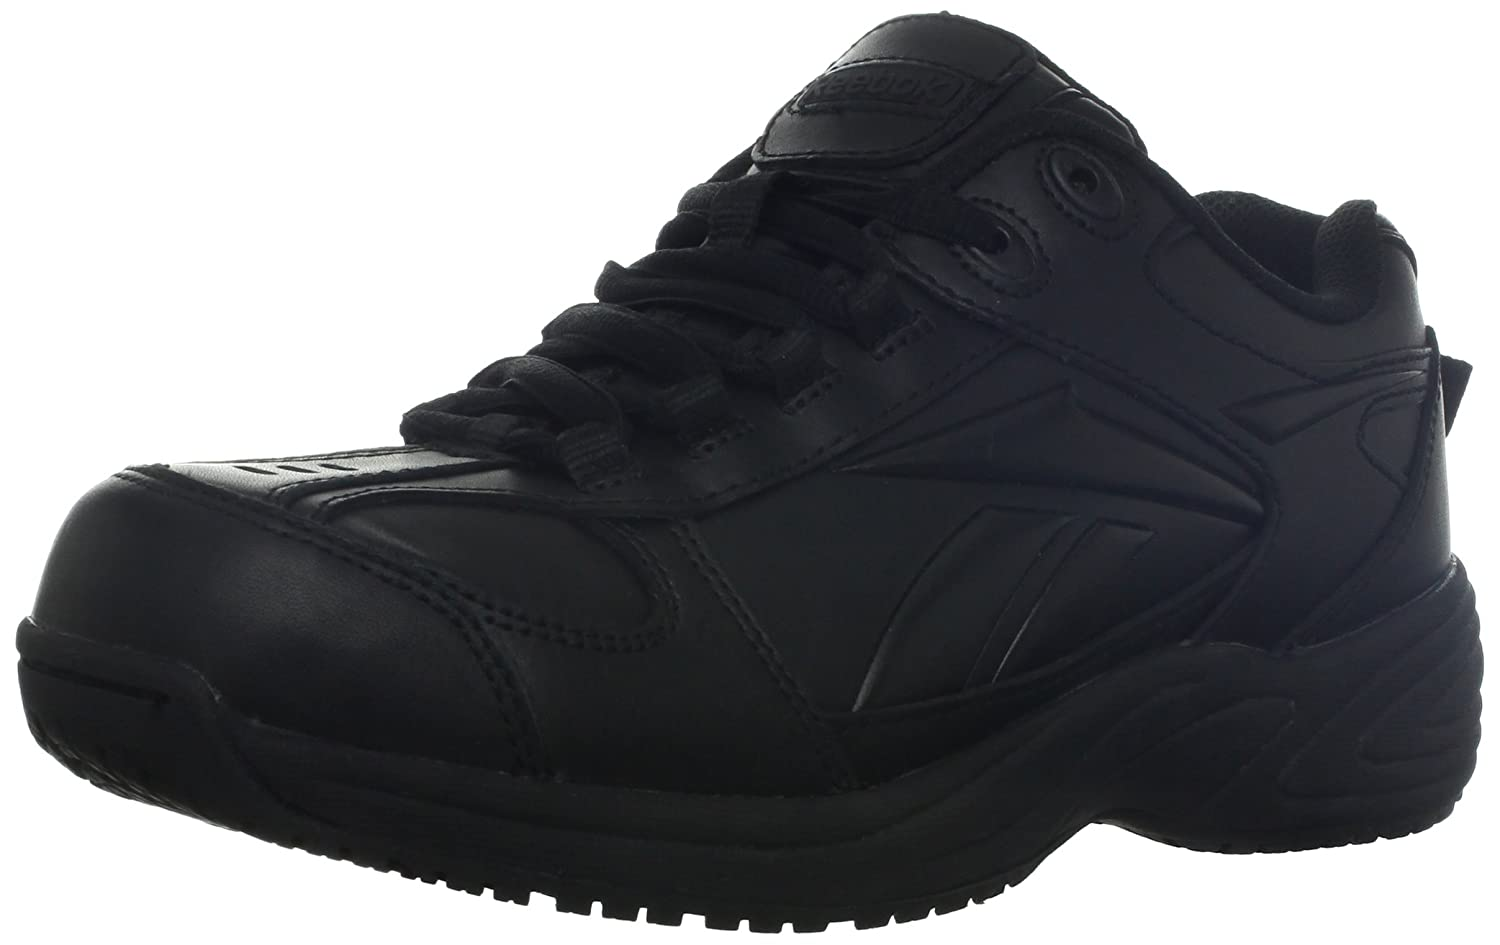 Reebok Work Women's Jorie RB110 Athletic Safety Shoe B000A2E9GO 10.5 W US|Black